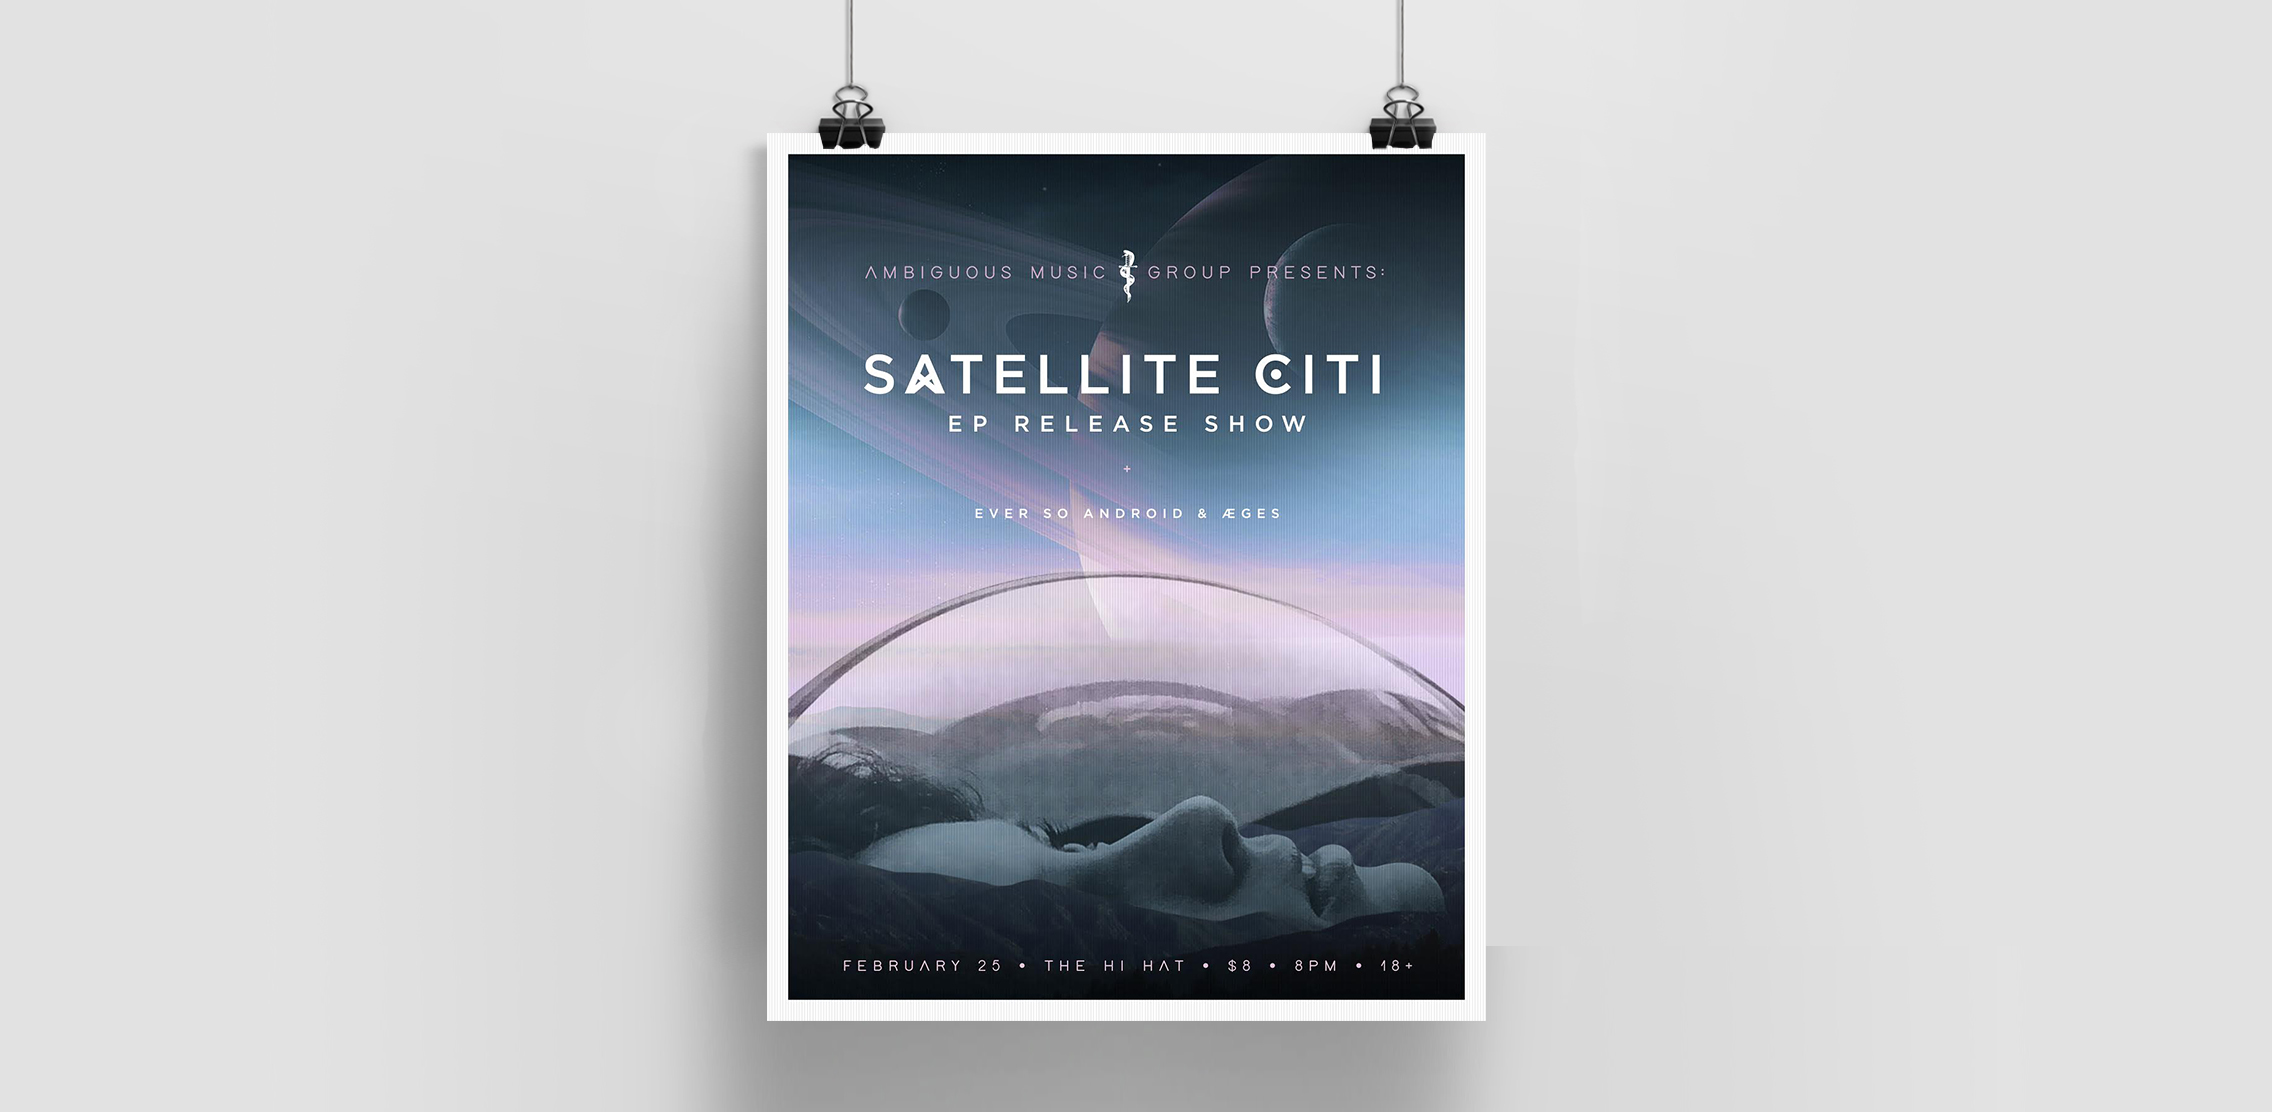 Poster for Satellite Citi at The Hi Hat, LA